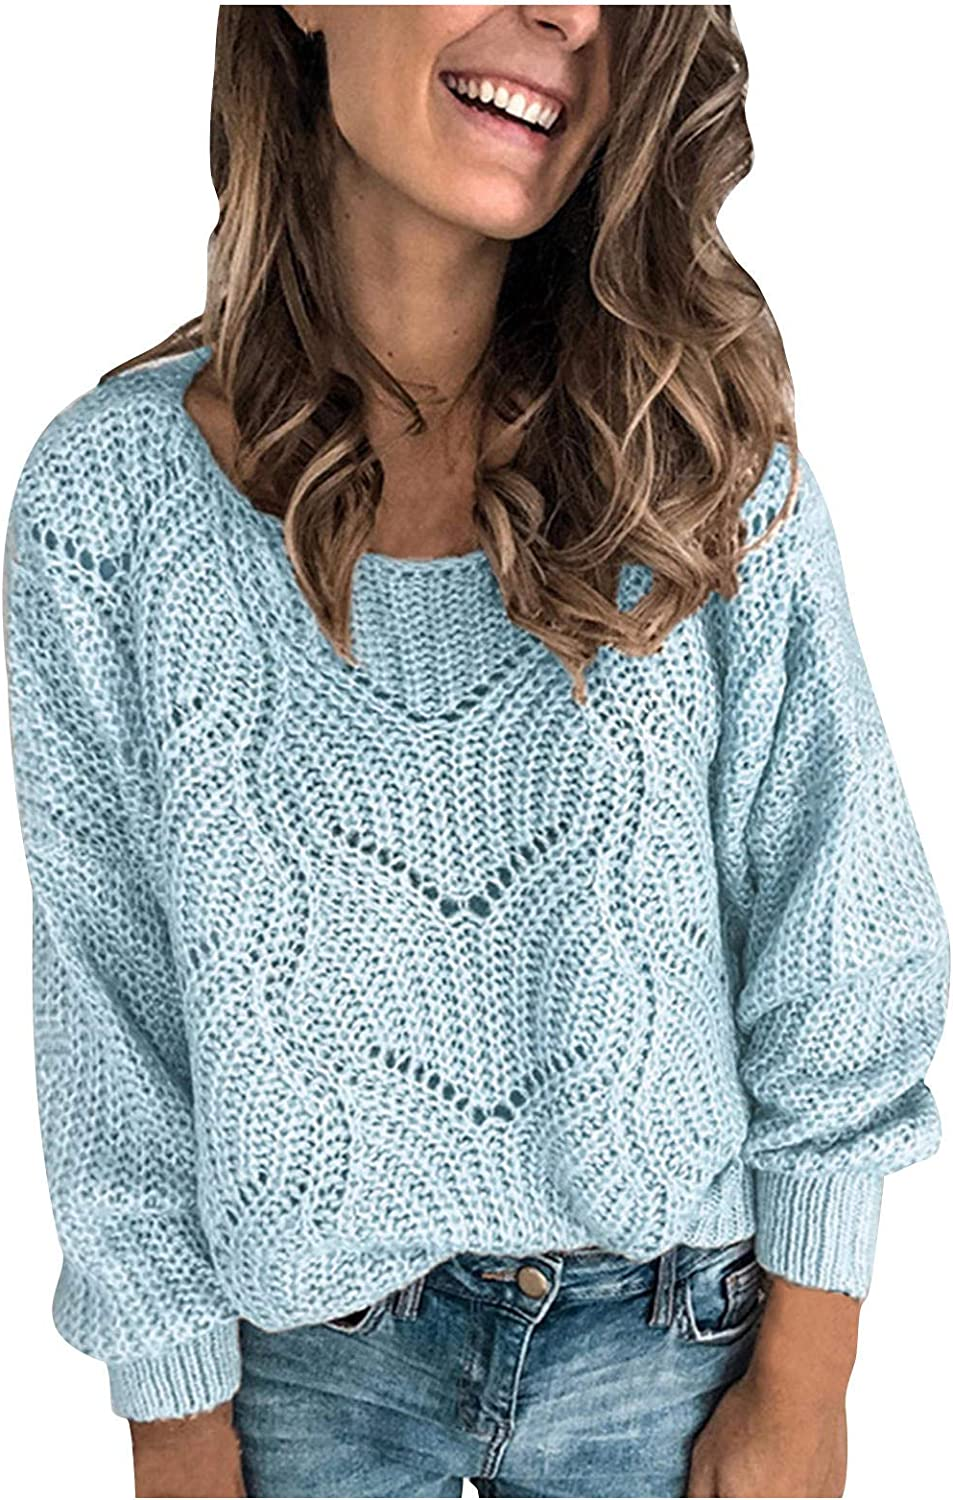 Sweater for Women,Wamajoly Women's Turtleneck Oversized Batwing Sleeve Loose Chunky Knitted Pullover Sweater Jumper Tops